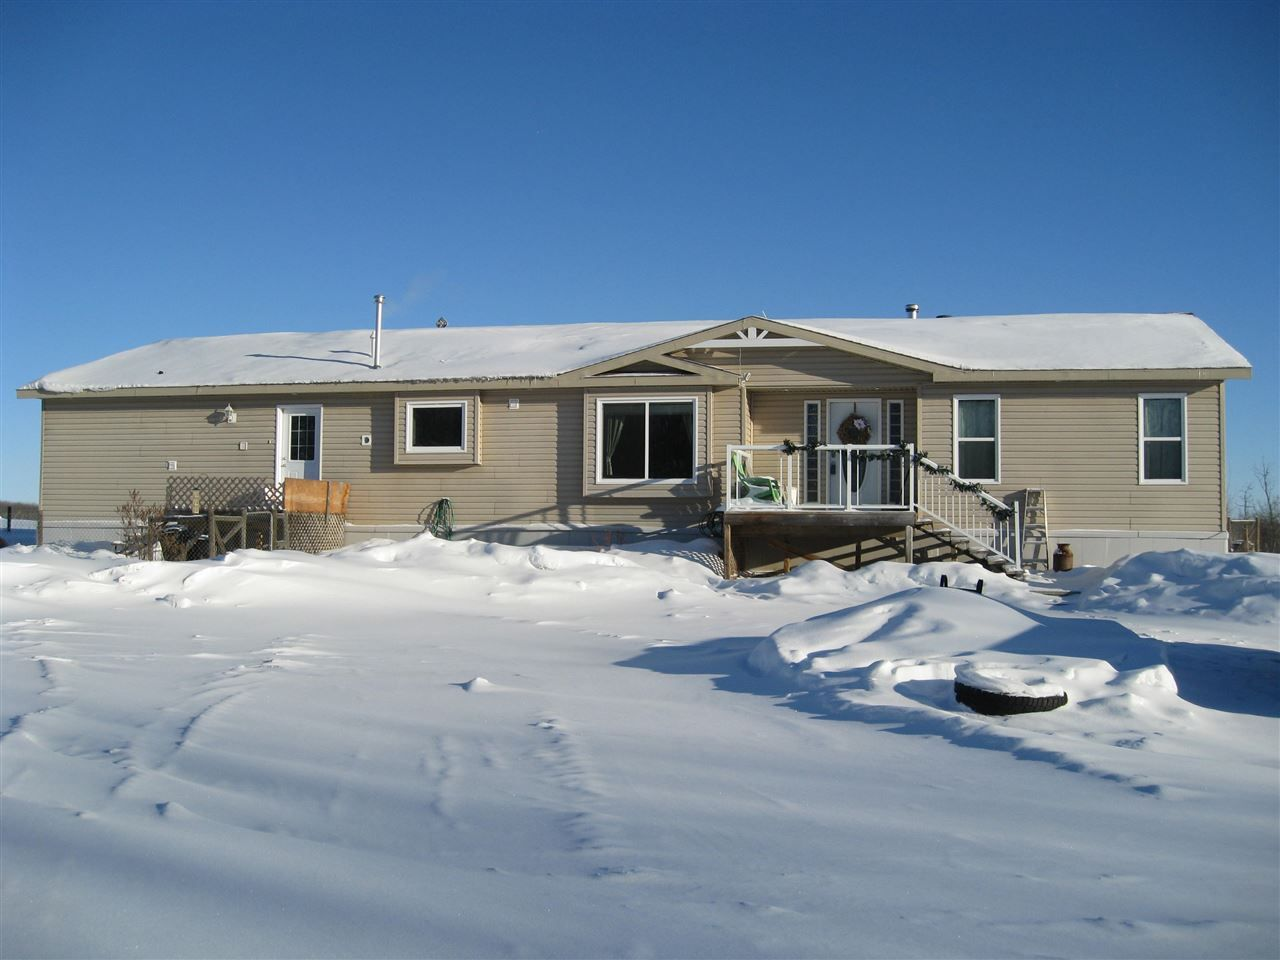 Main Photo: 54331 Rge Rd 15: Rural Lac Ste. Anne County House for sale : MLS®# E4141255